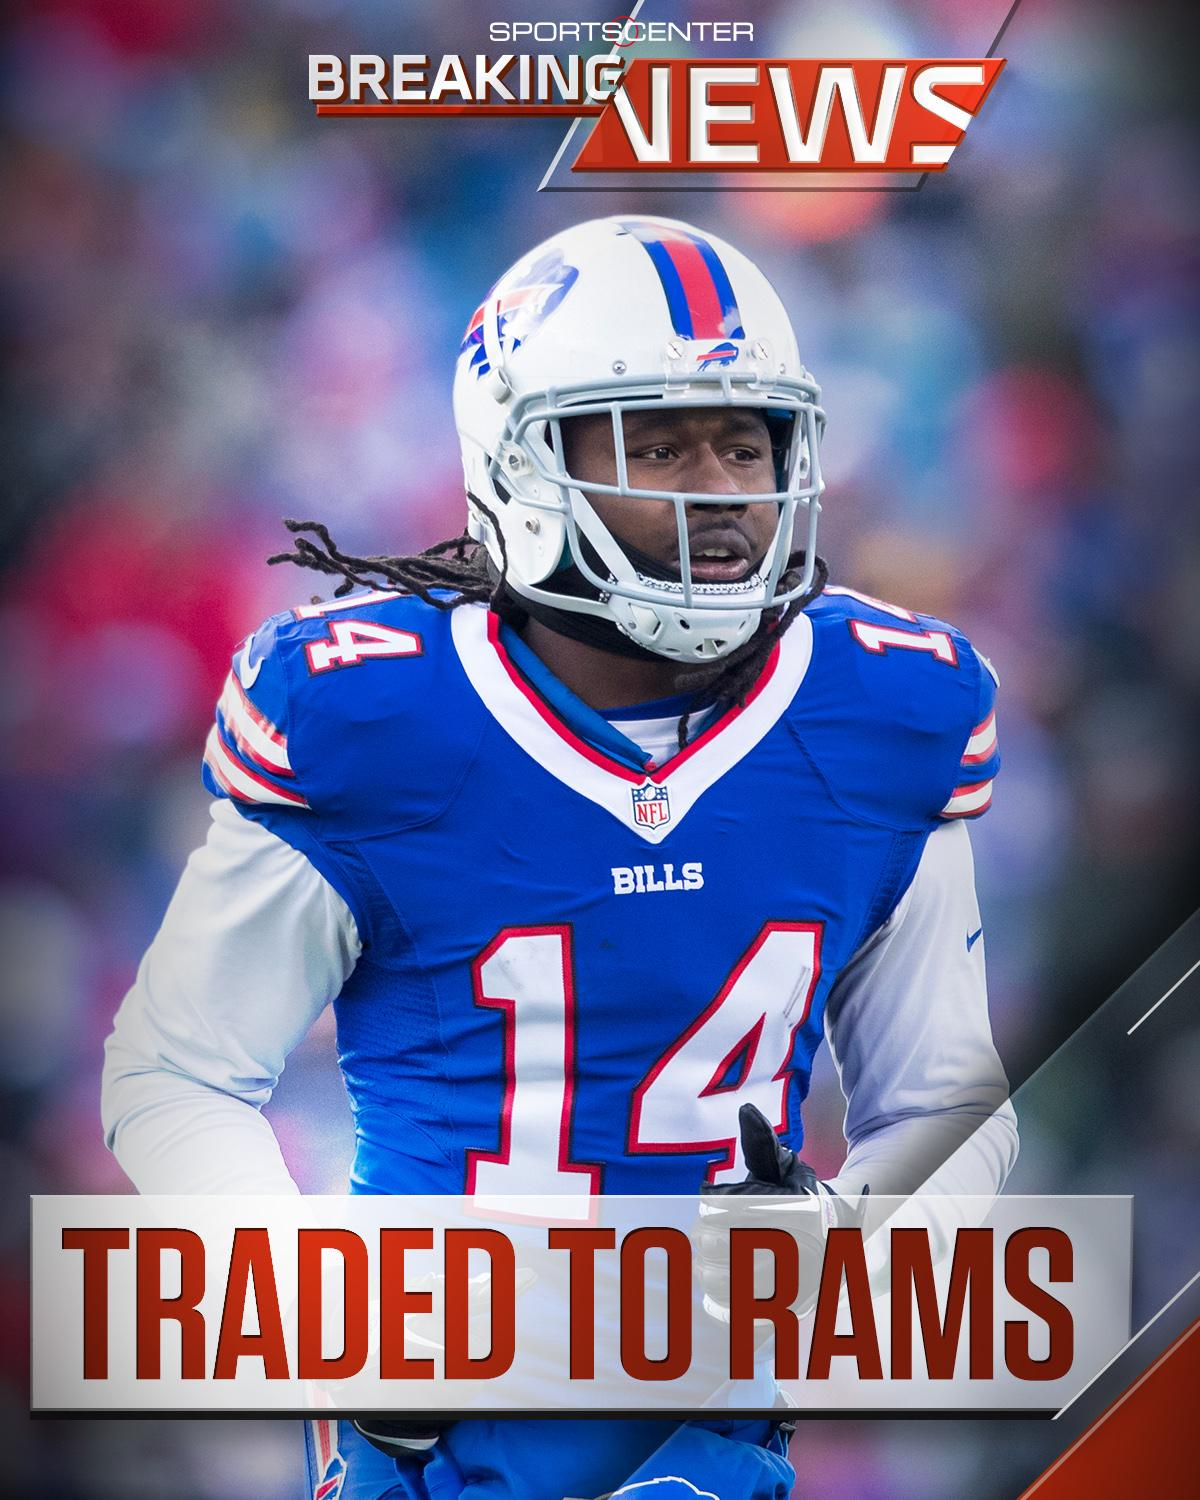 The Bills have traded WR Sammy Watkins to the Rams. https://t.co/9zyMbA8wA9